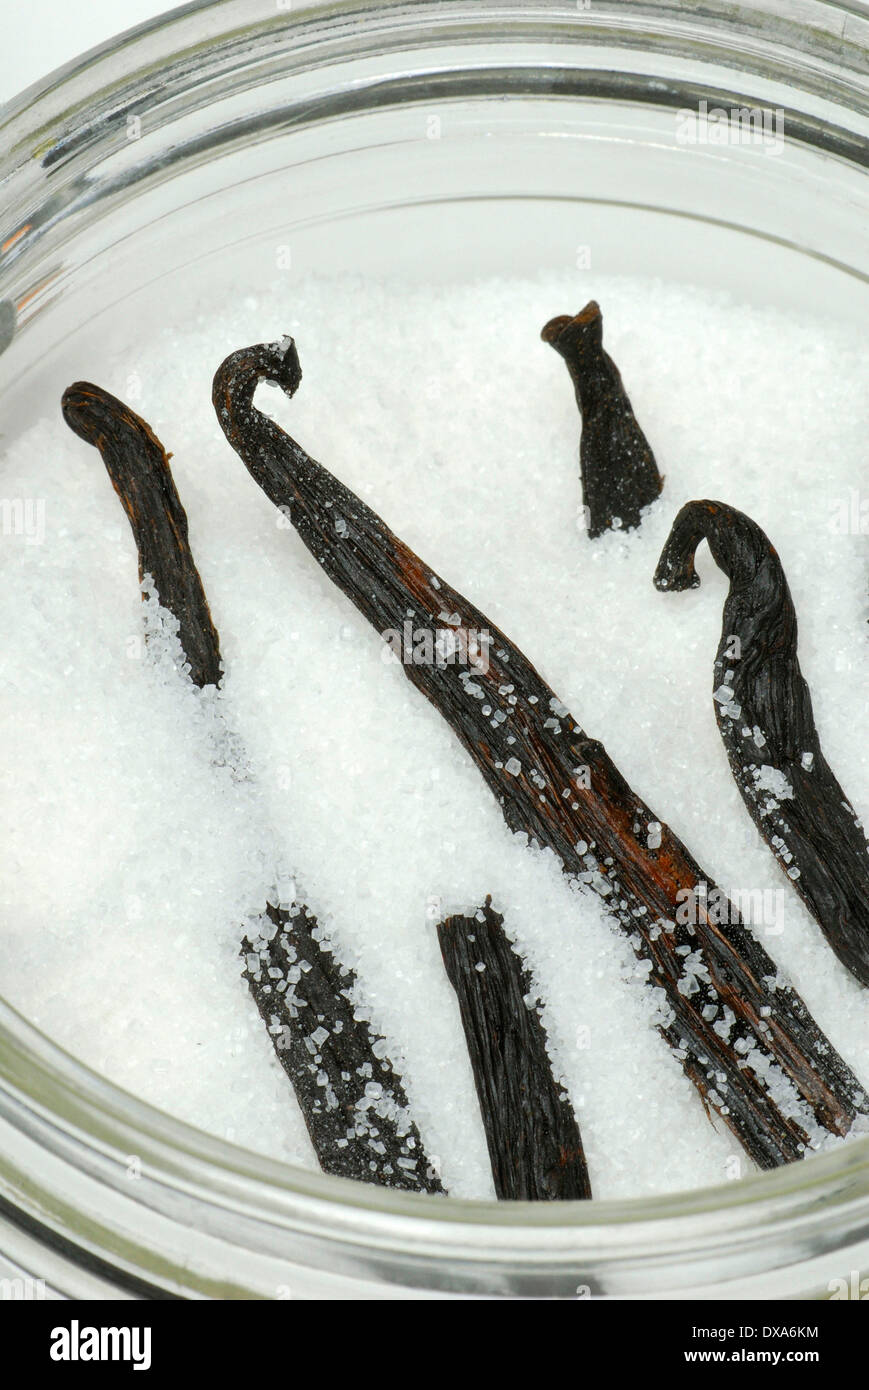 Vanilla pods in sugar - Stock Image